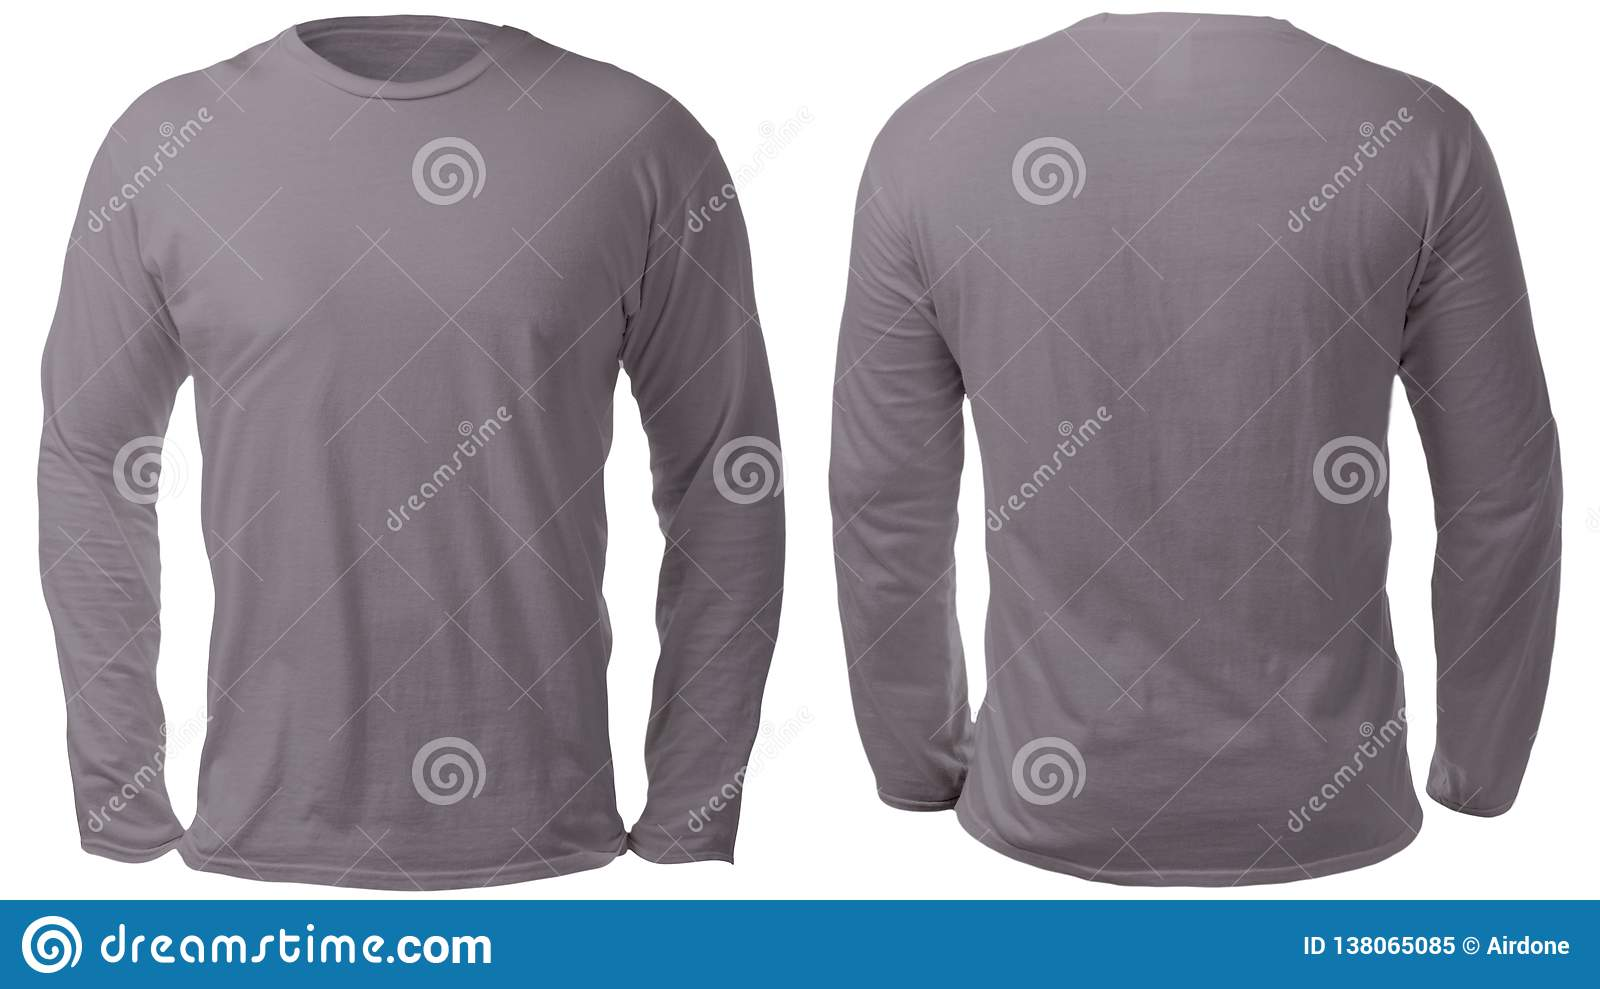 84948a36b070 Blank long sleeved shirt mock up template, front and back view, isolated on  white, plain gray t-shirt mockup. Tee sweater sweatshirt design  presentation for ...